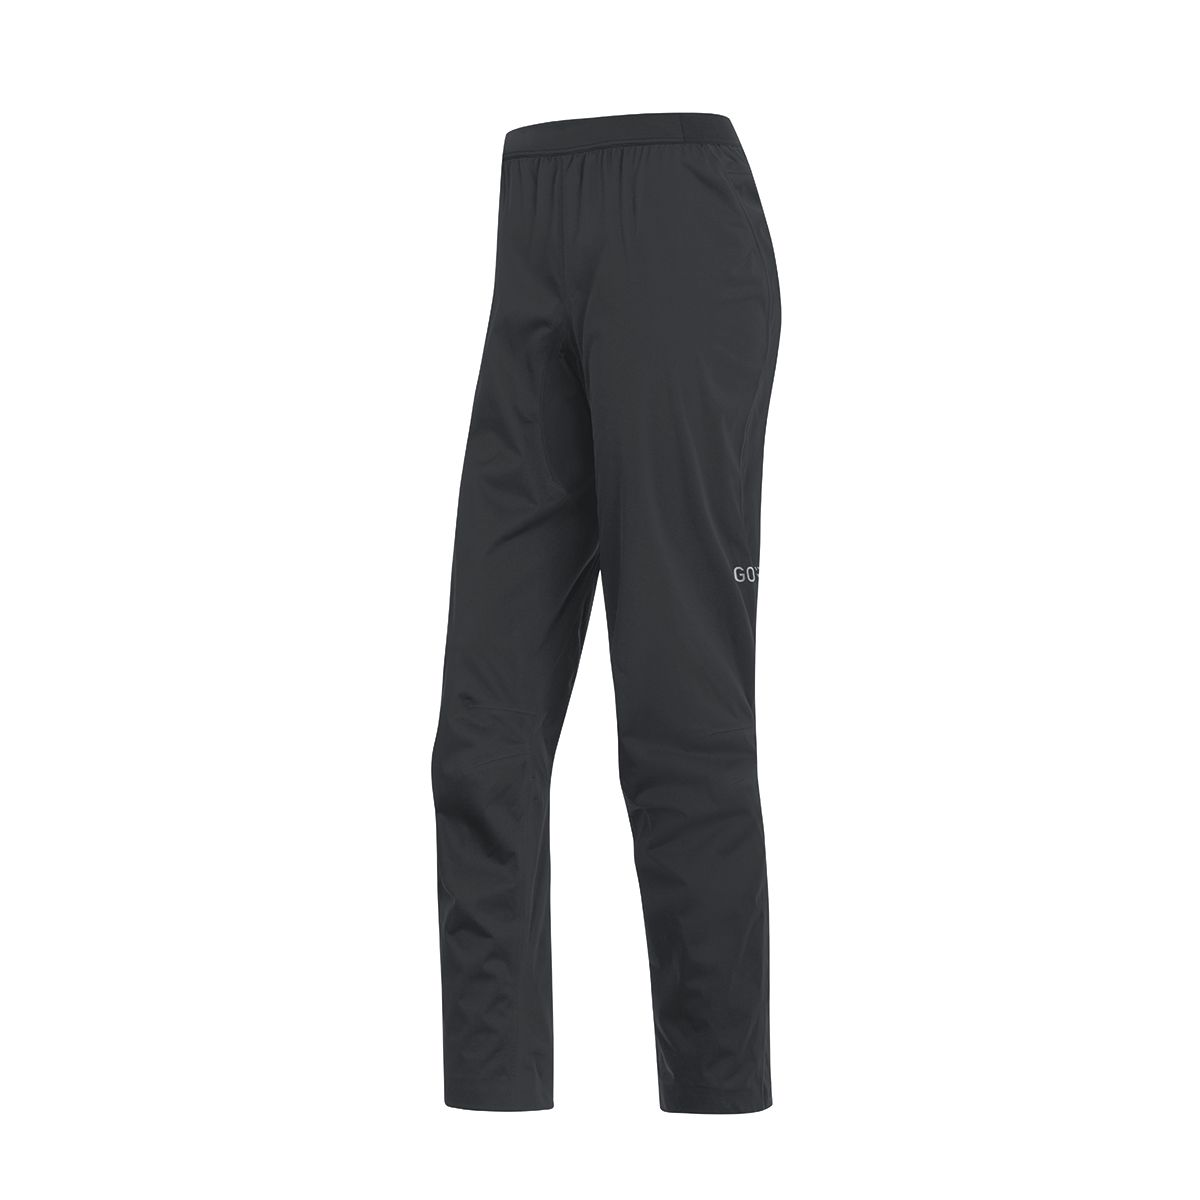 C5 WOMEN GORE-TEX ACTIVE TRAIL PANTS waterproof trousers for women